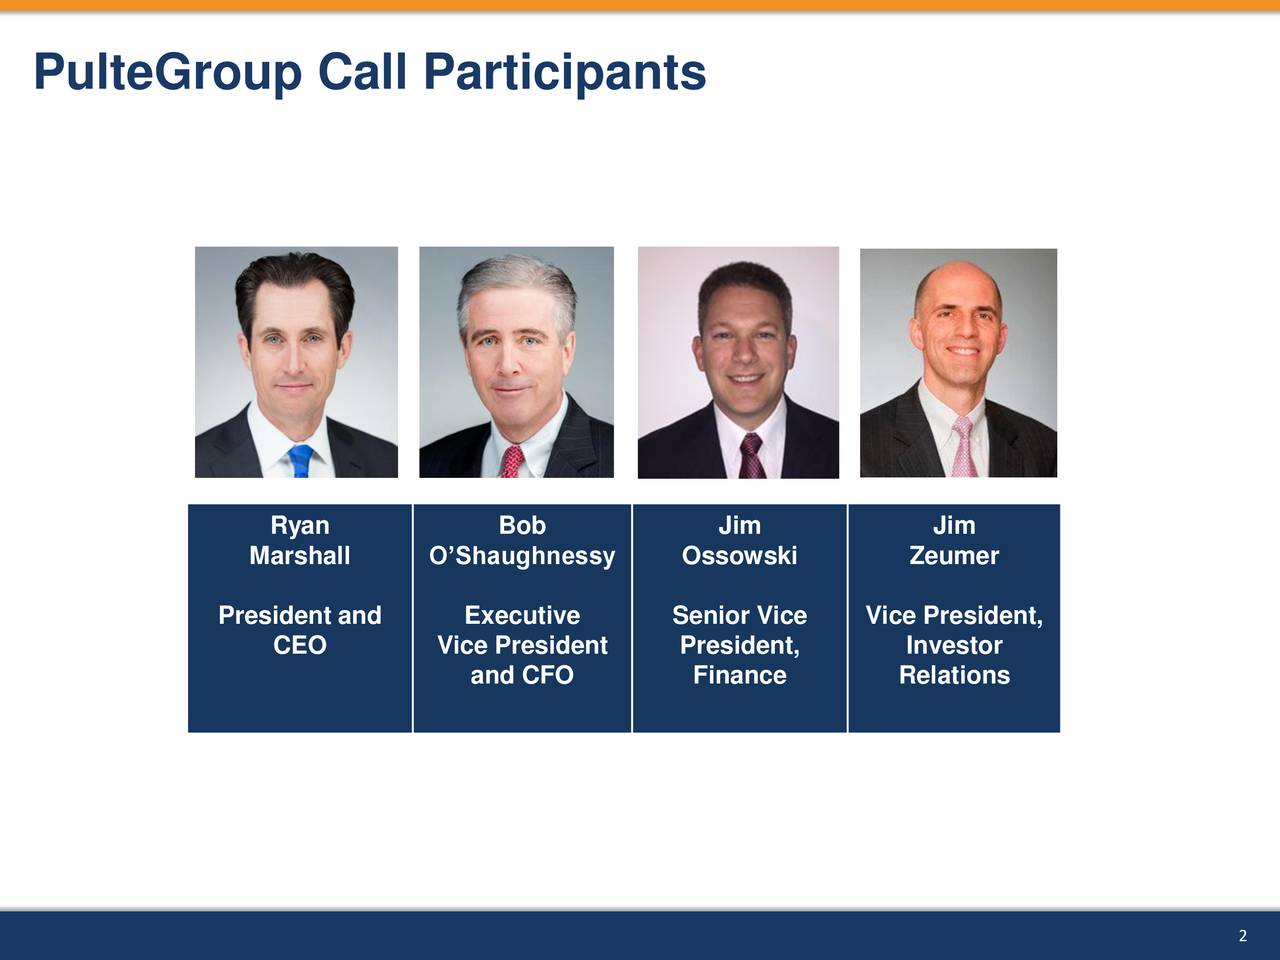 PulteGroup Call Participants